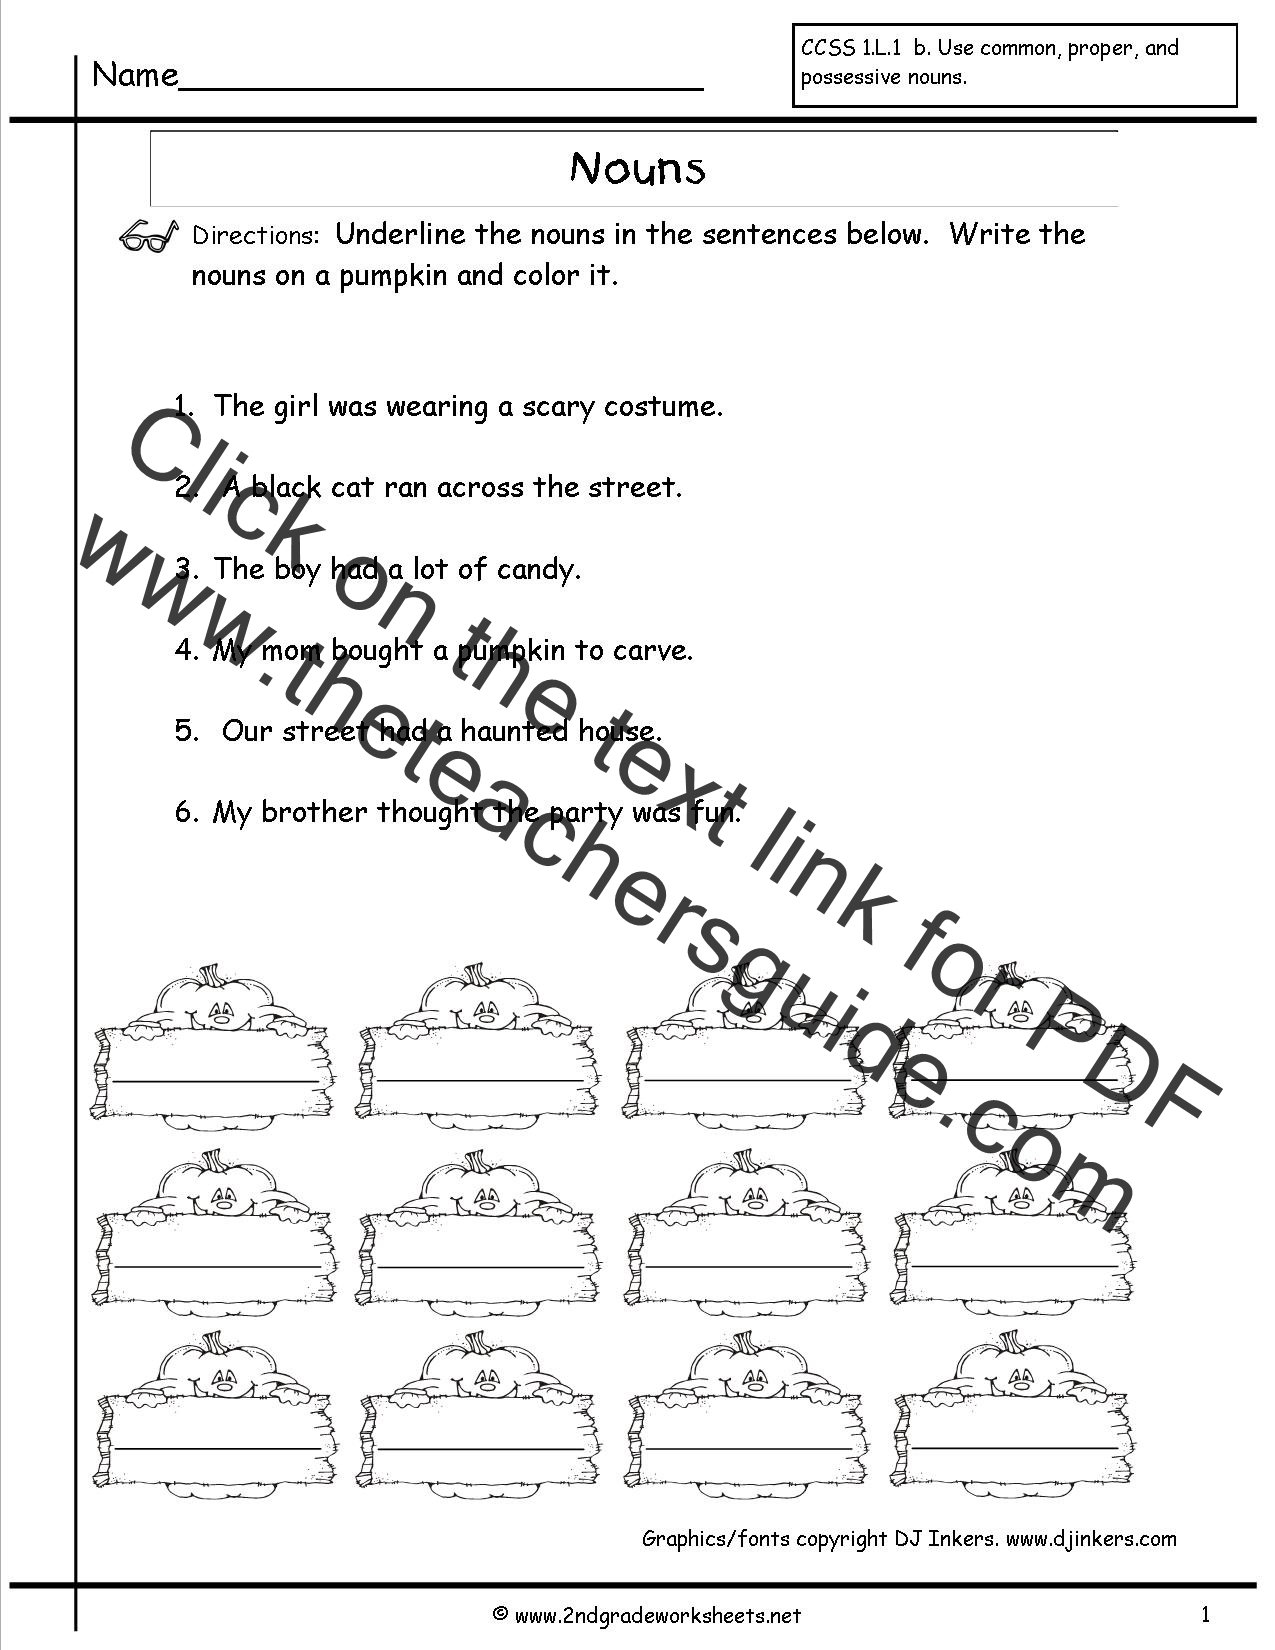 image relating to Free Printable Medical Terminology Worksheets referred to as Nouns Worksheets and Printouts